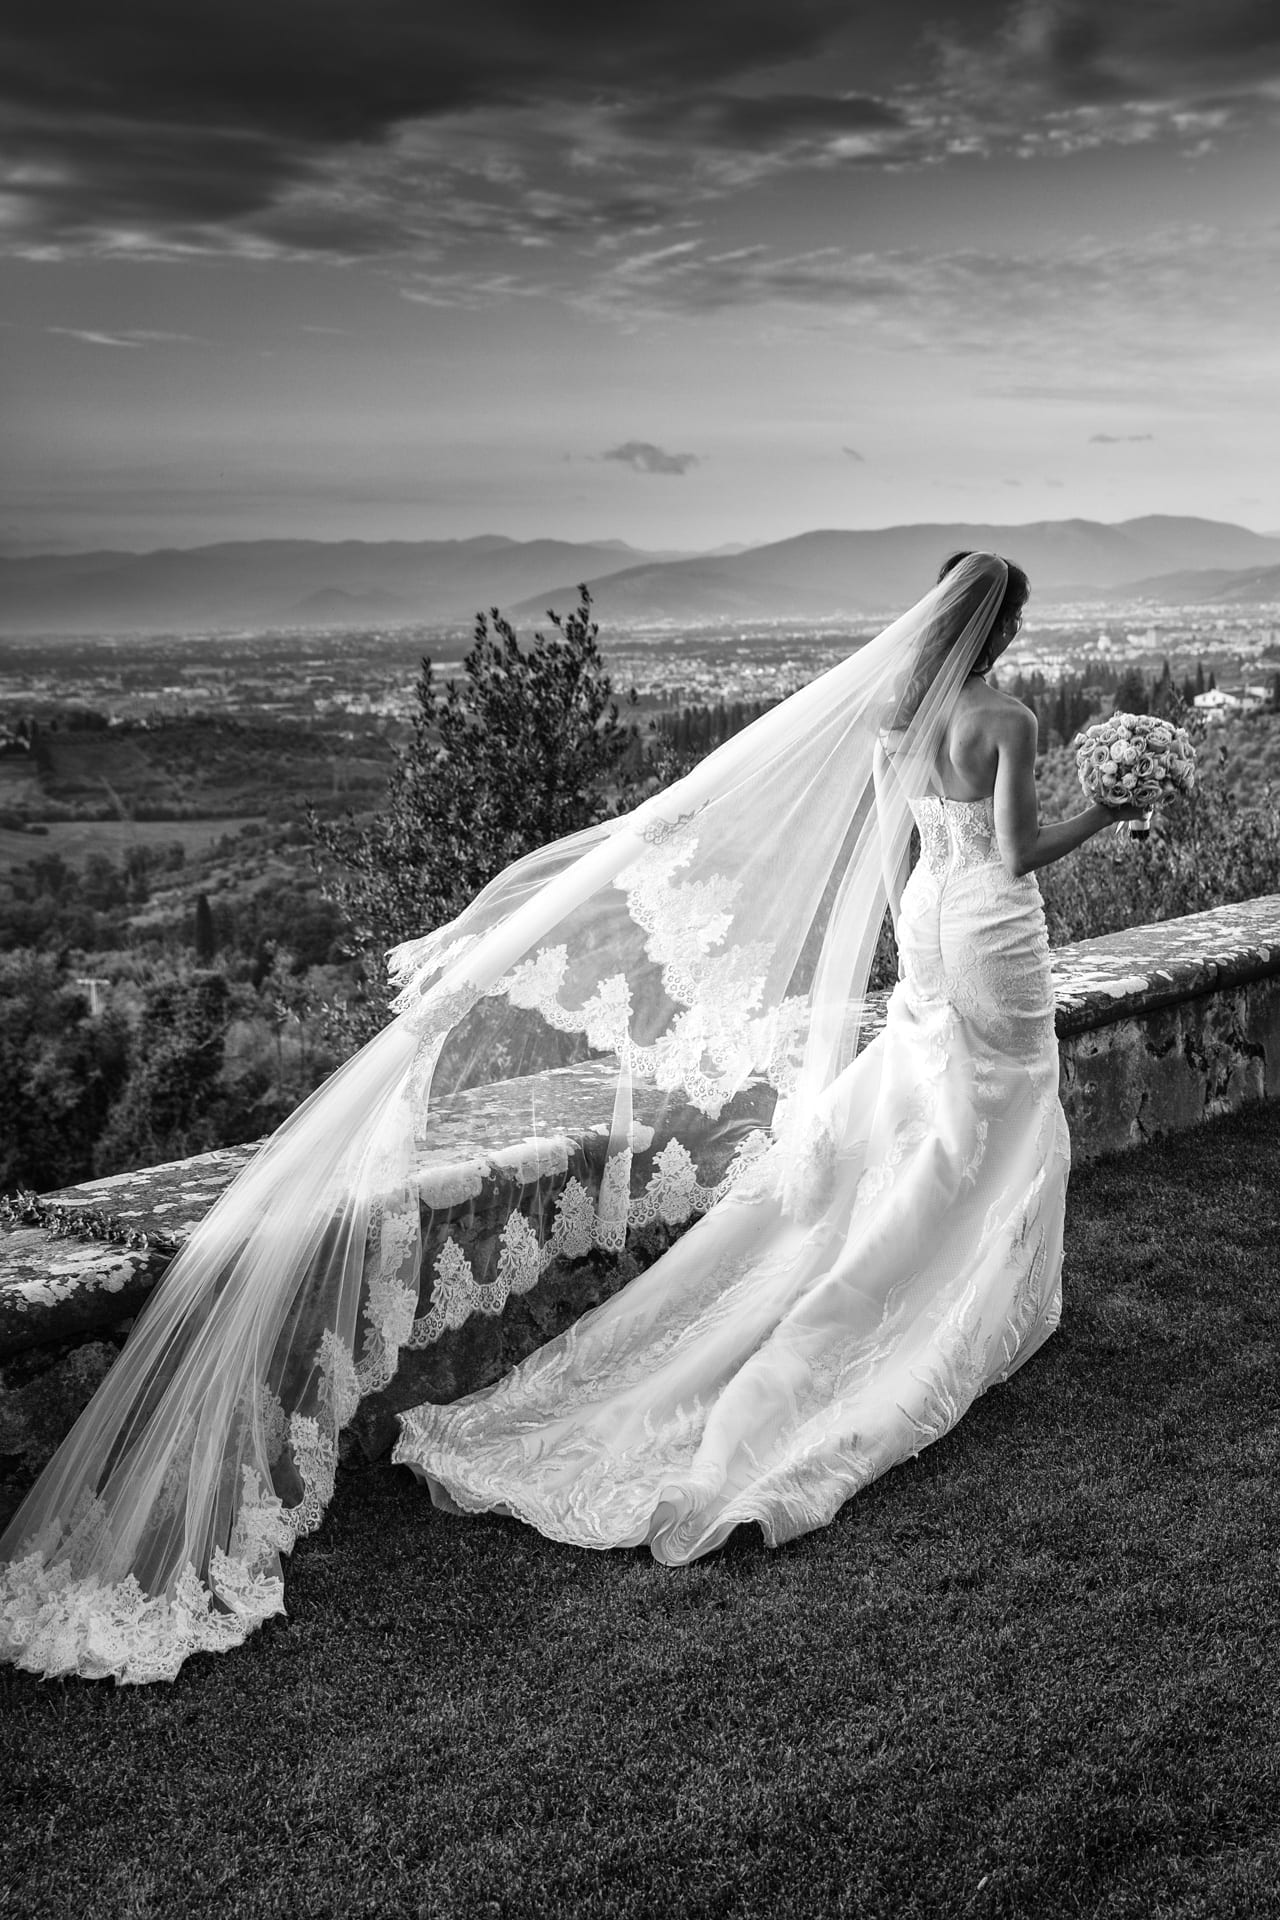 https://s3-eu-central-1.amazonaws.com/righiphotography-com/wp-content/uploads/2020/02/02183139/Wedding-Photo-No-Pose-Studio-Fotografico-Righi-RIGHI-84.jpg